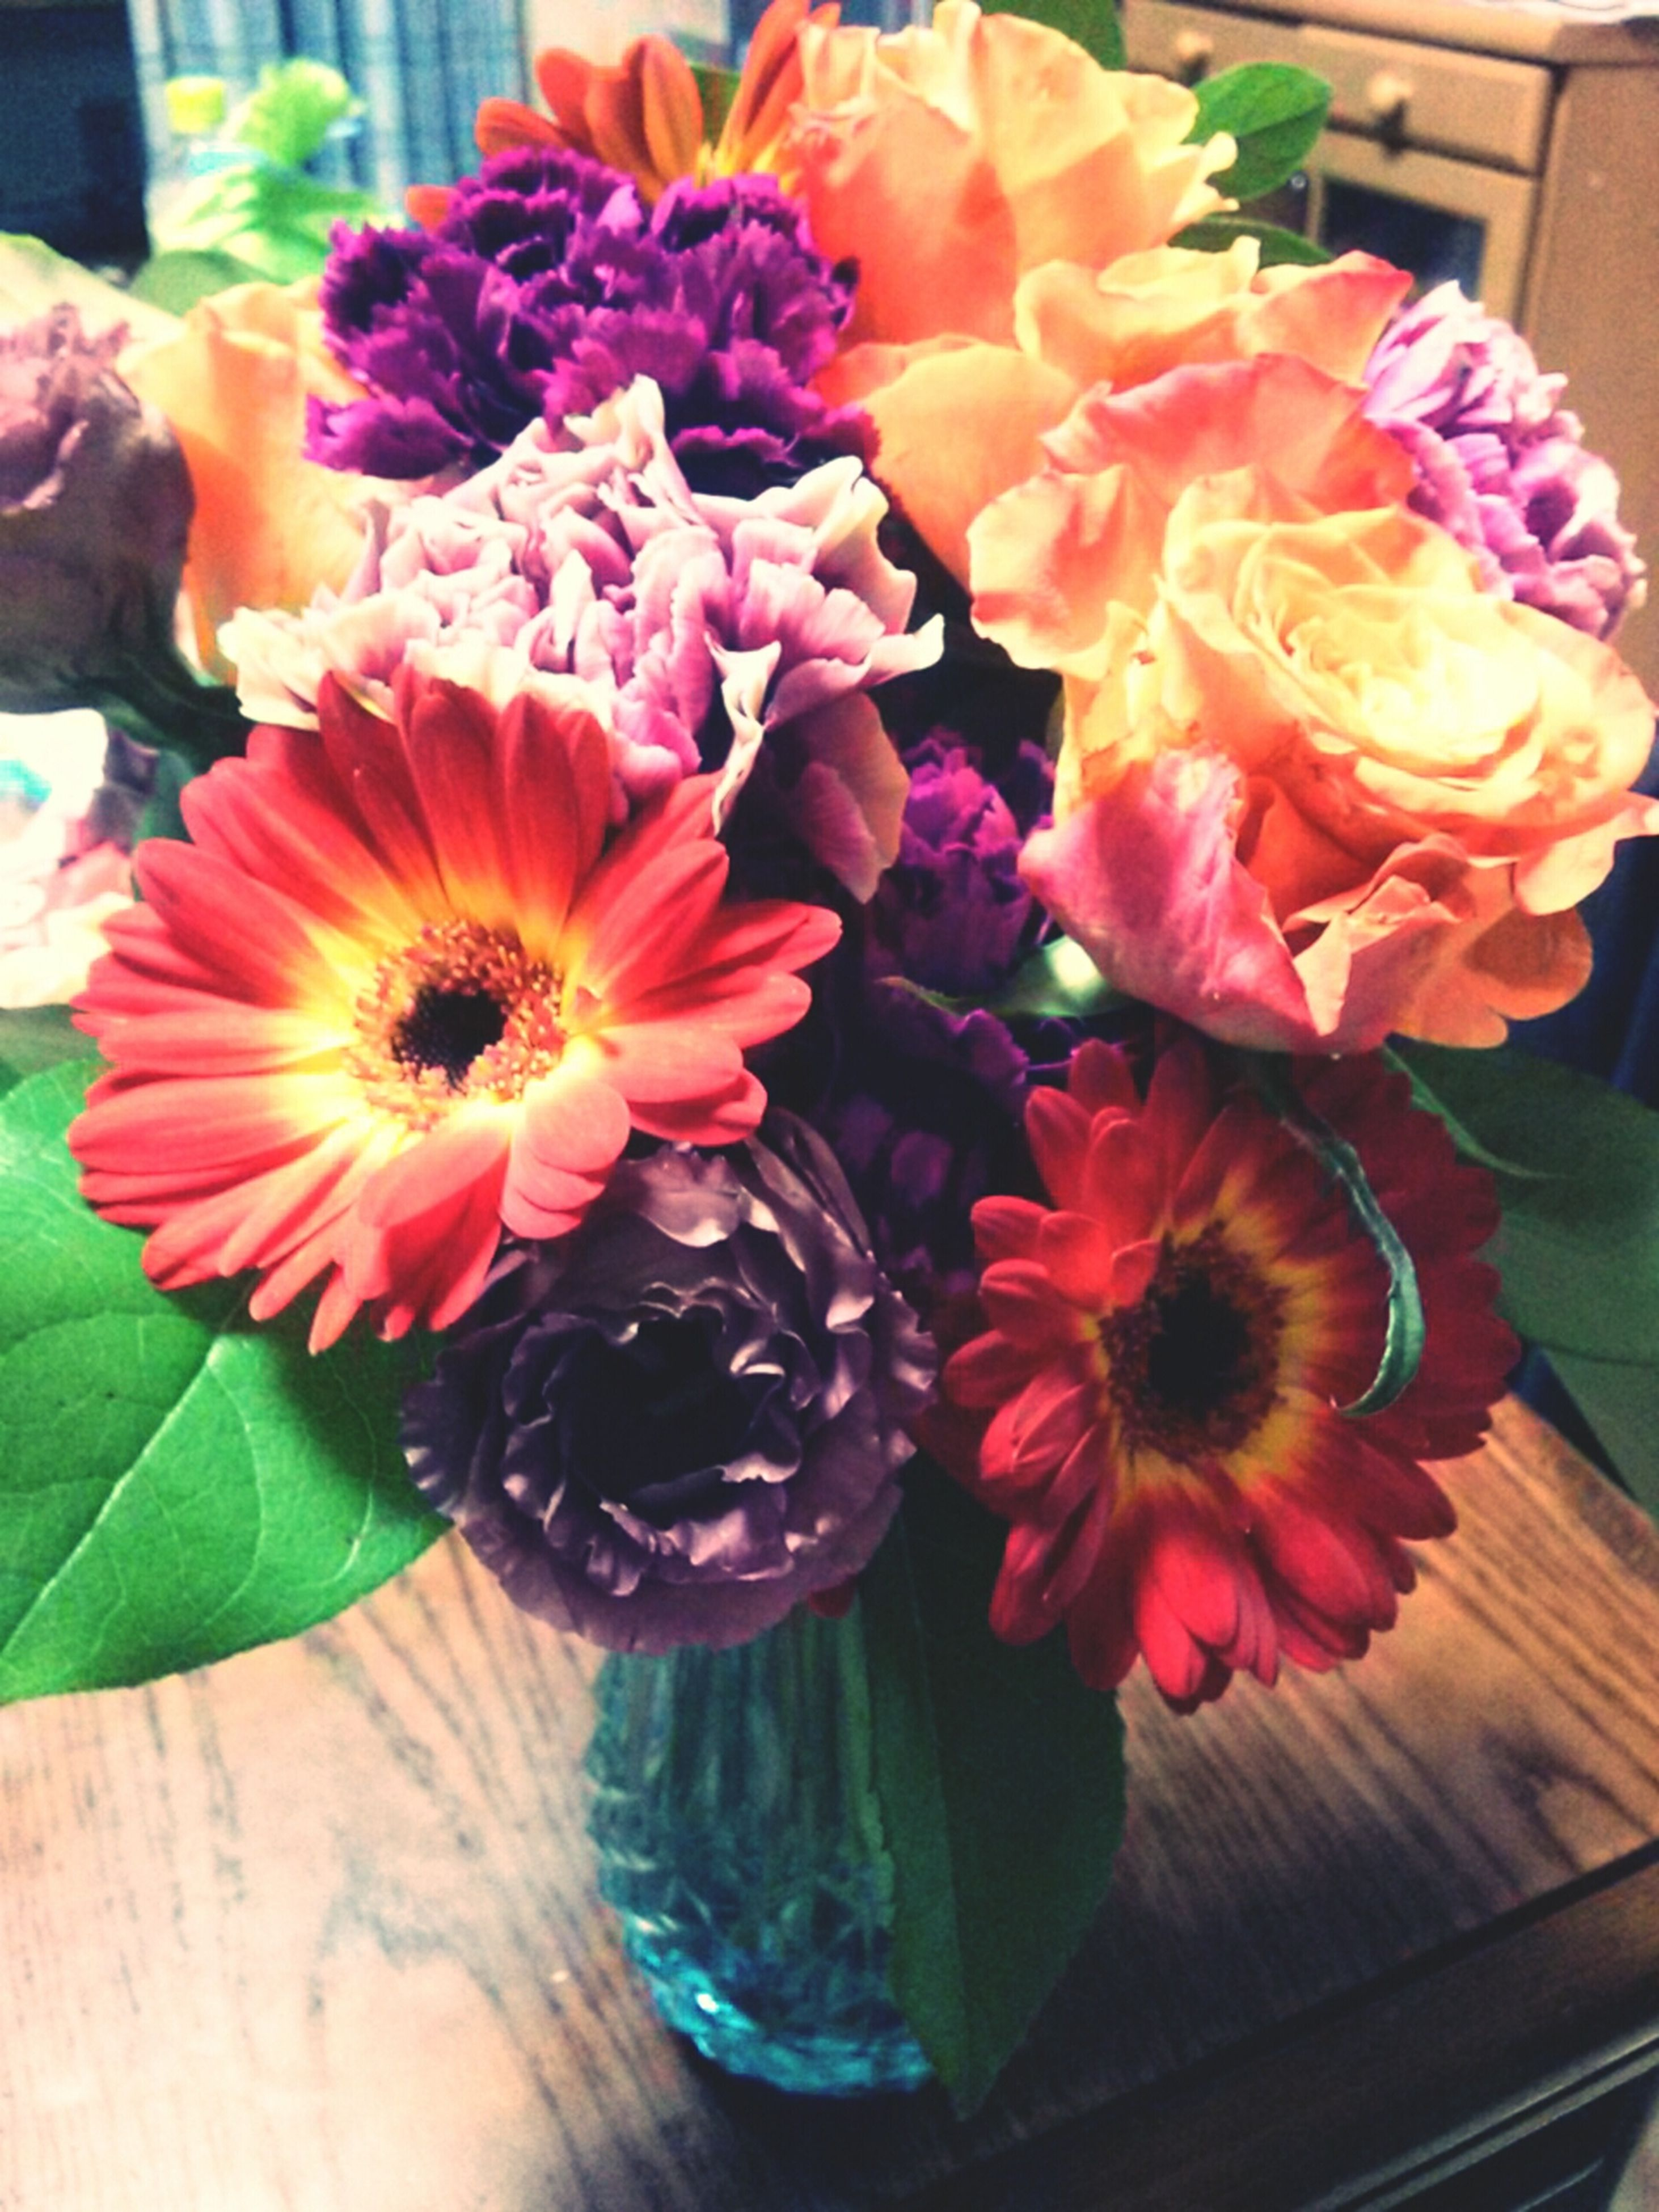 flower, freshness, petal, indoors, fragility, vase, flower head, table, bouquet, pink color, beauty in nature, flower arrangement, potted plant, high angle view, close-up, multi colored, nature, decoration, bunch of flowers, plant